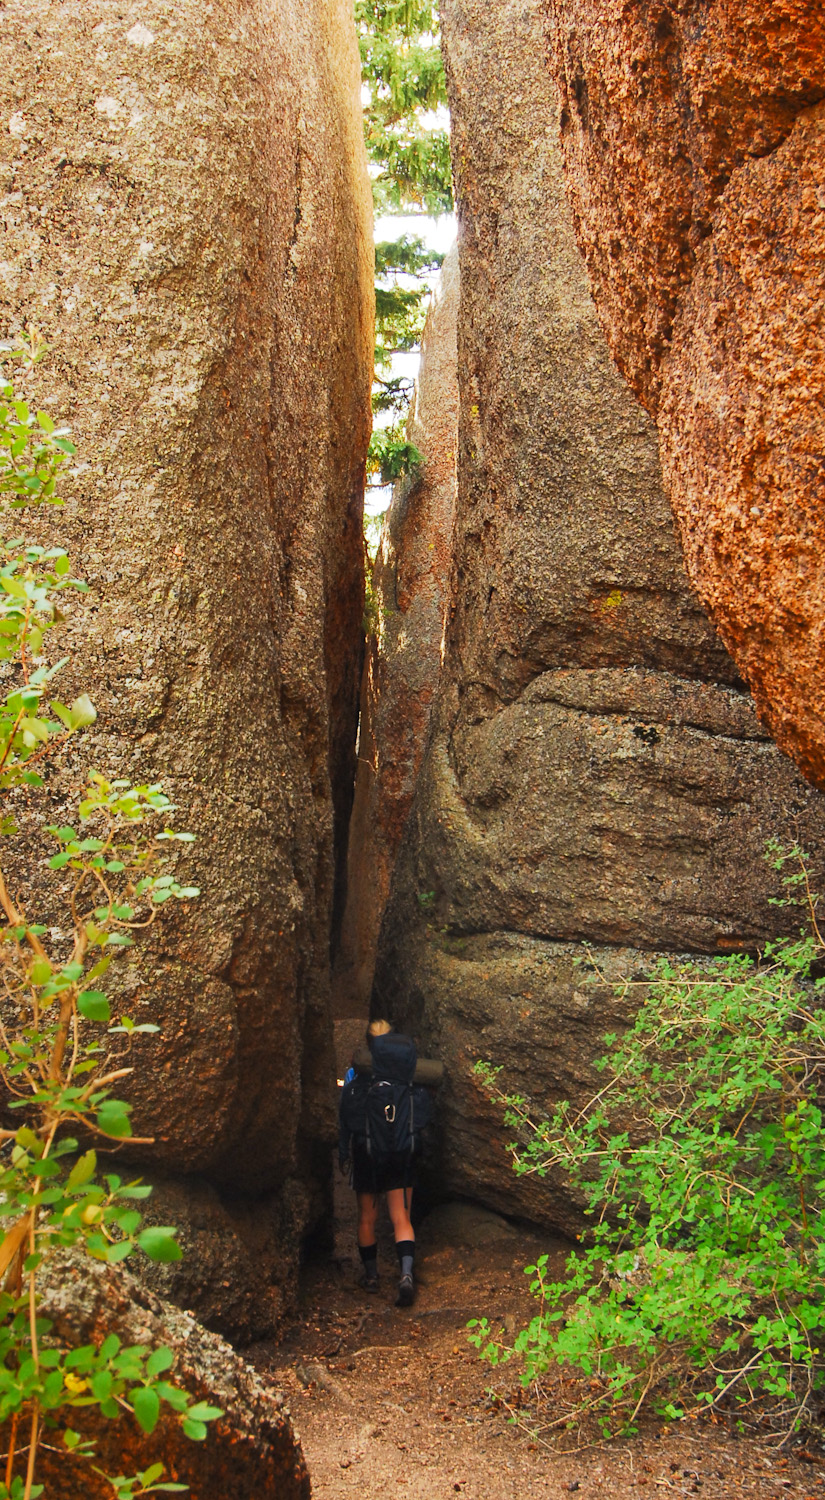 Tight passage between boulders at Lost Creek Wilderness